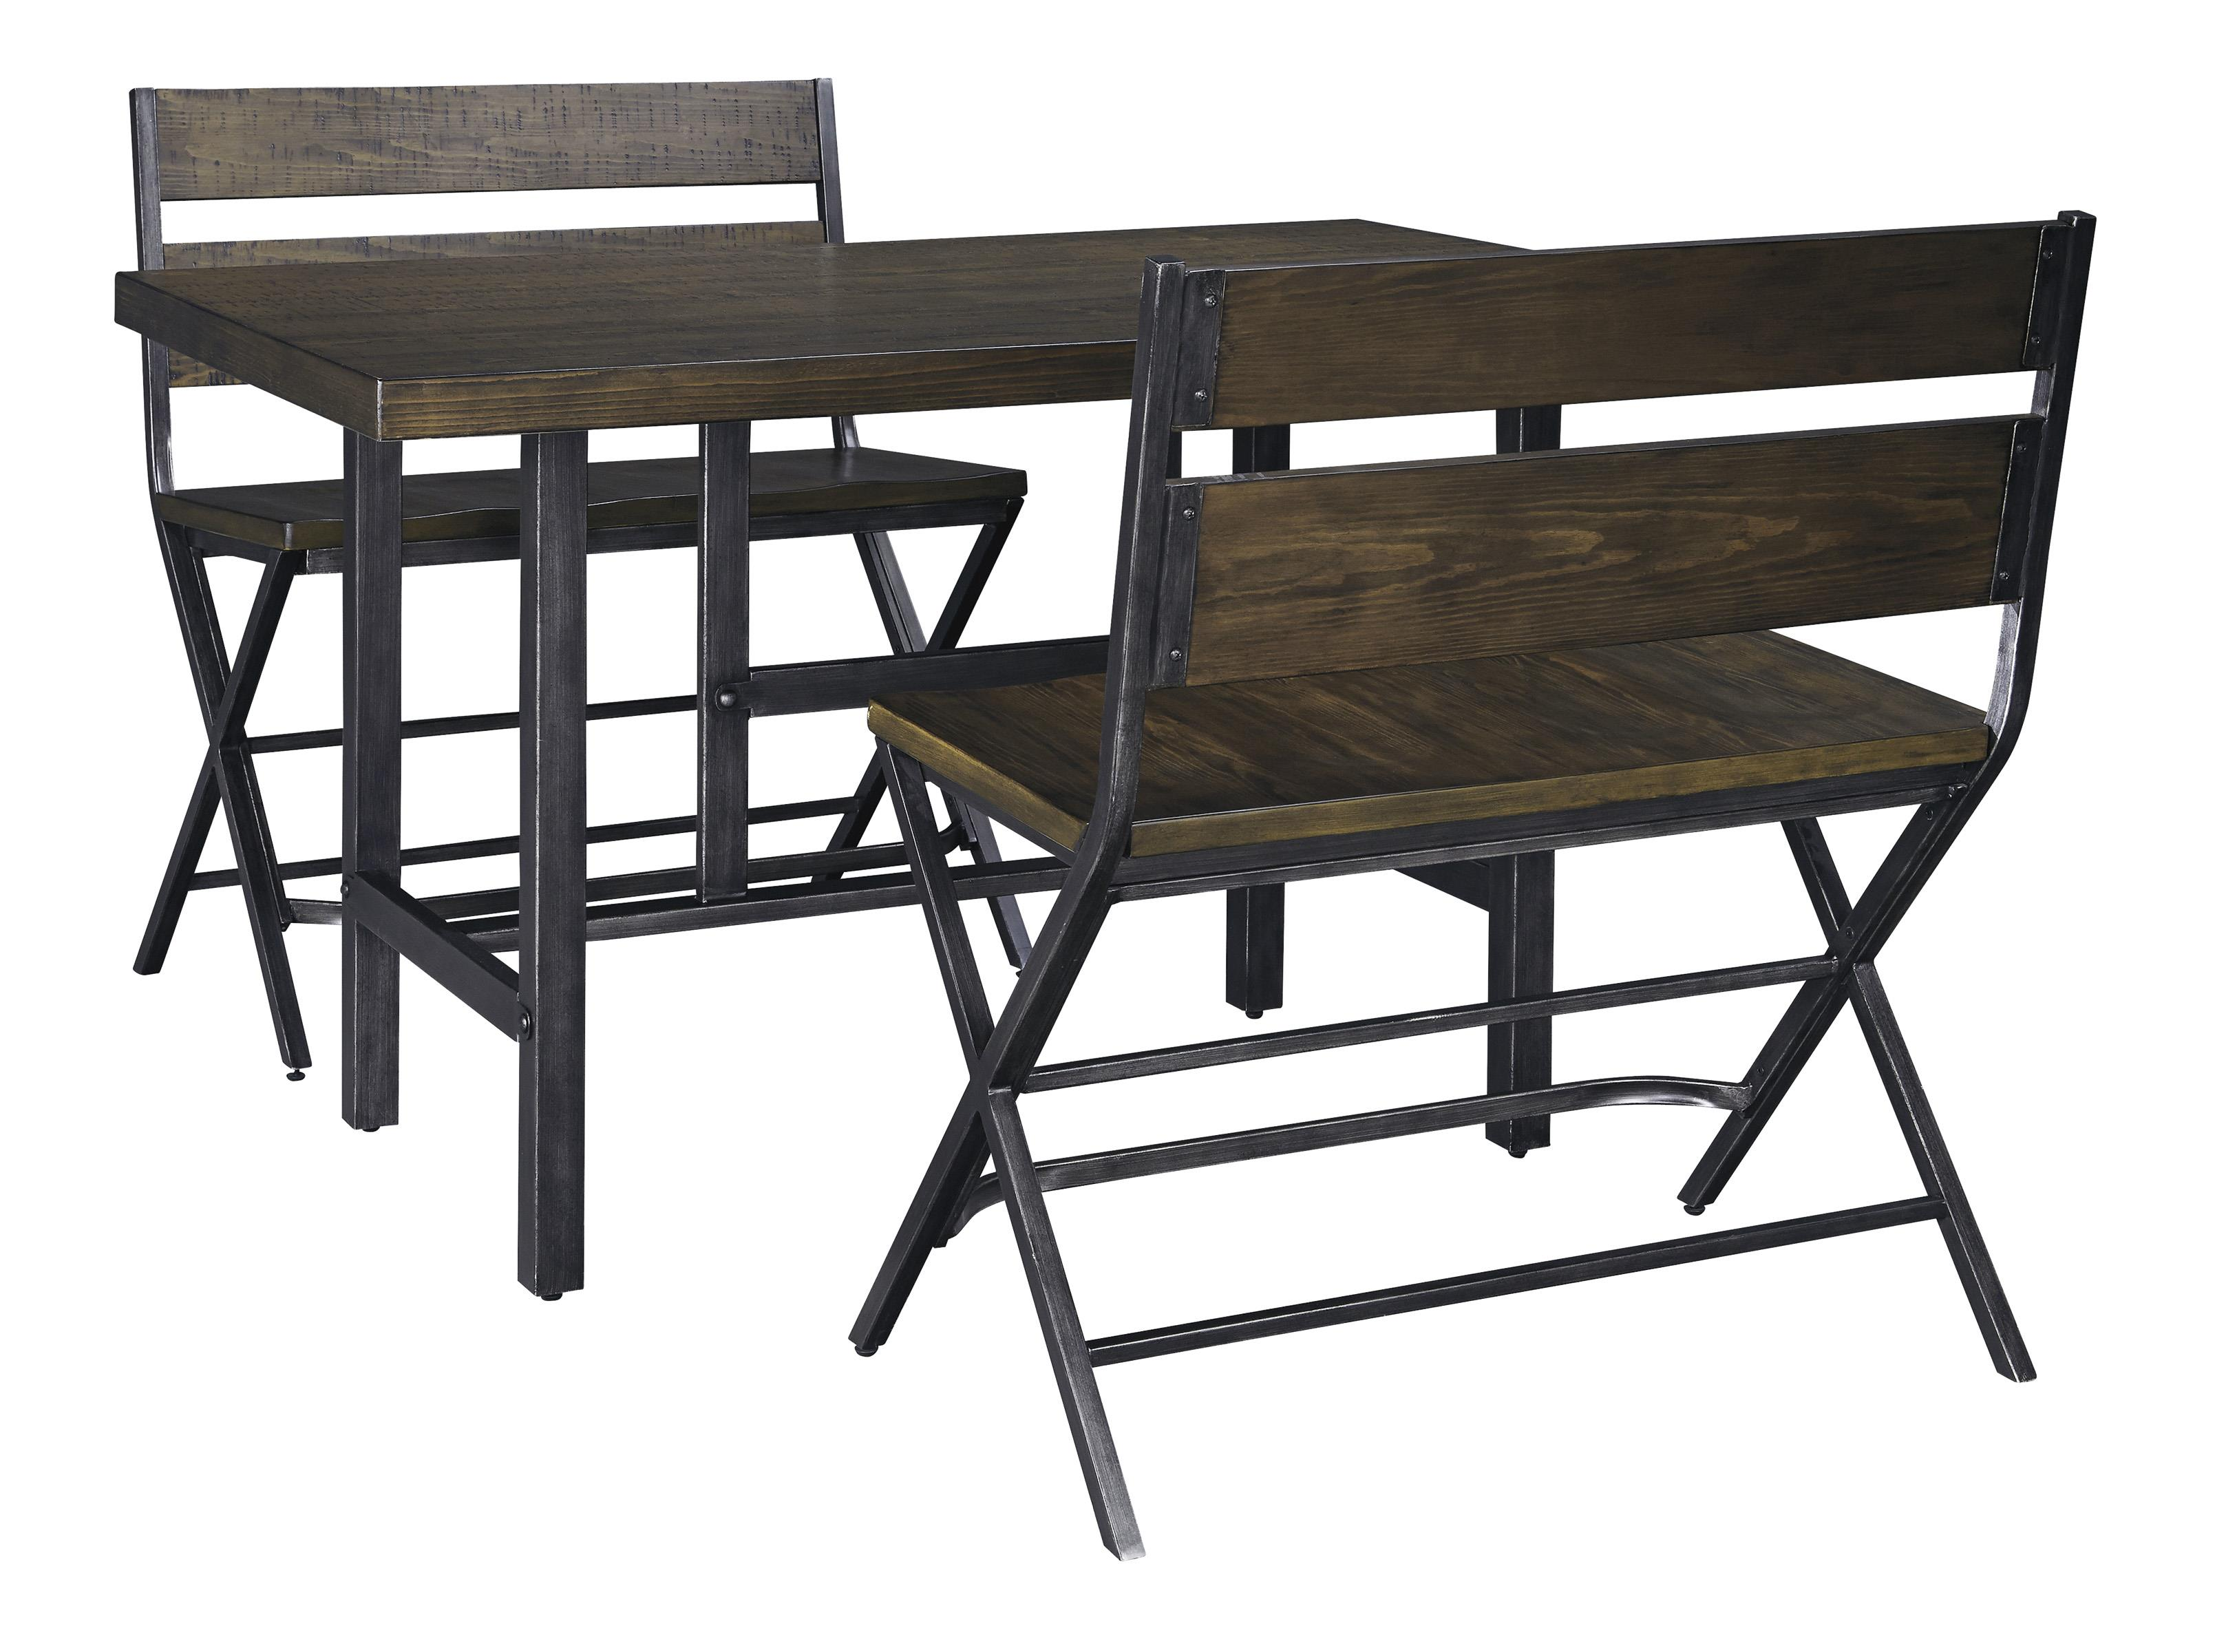 Signature Design by Ashley Kavara 3-Piece Counter Table & Double Bar Stool Set - Item Number: D469-13+2x323